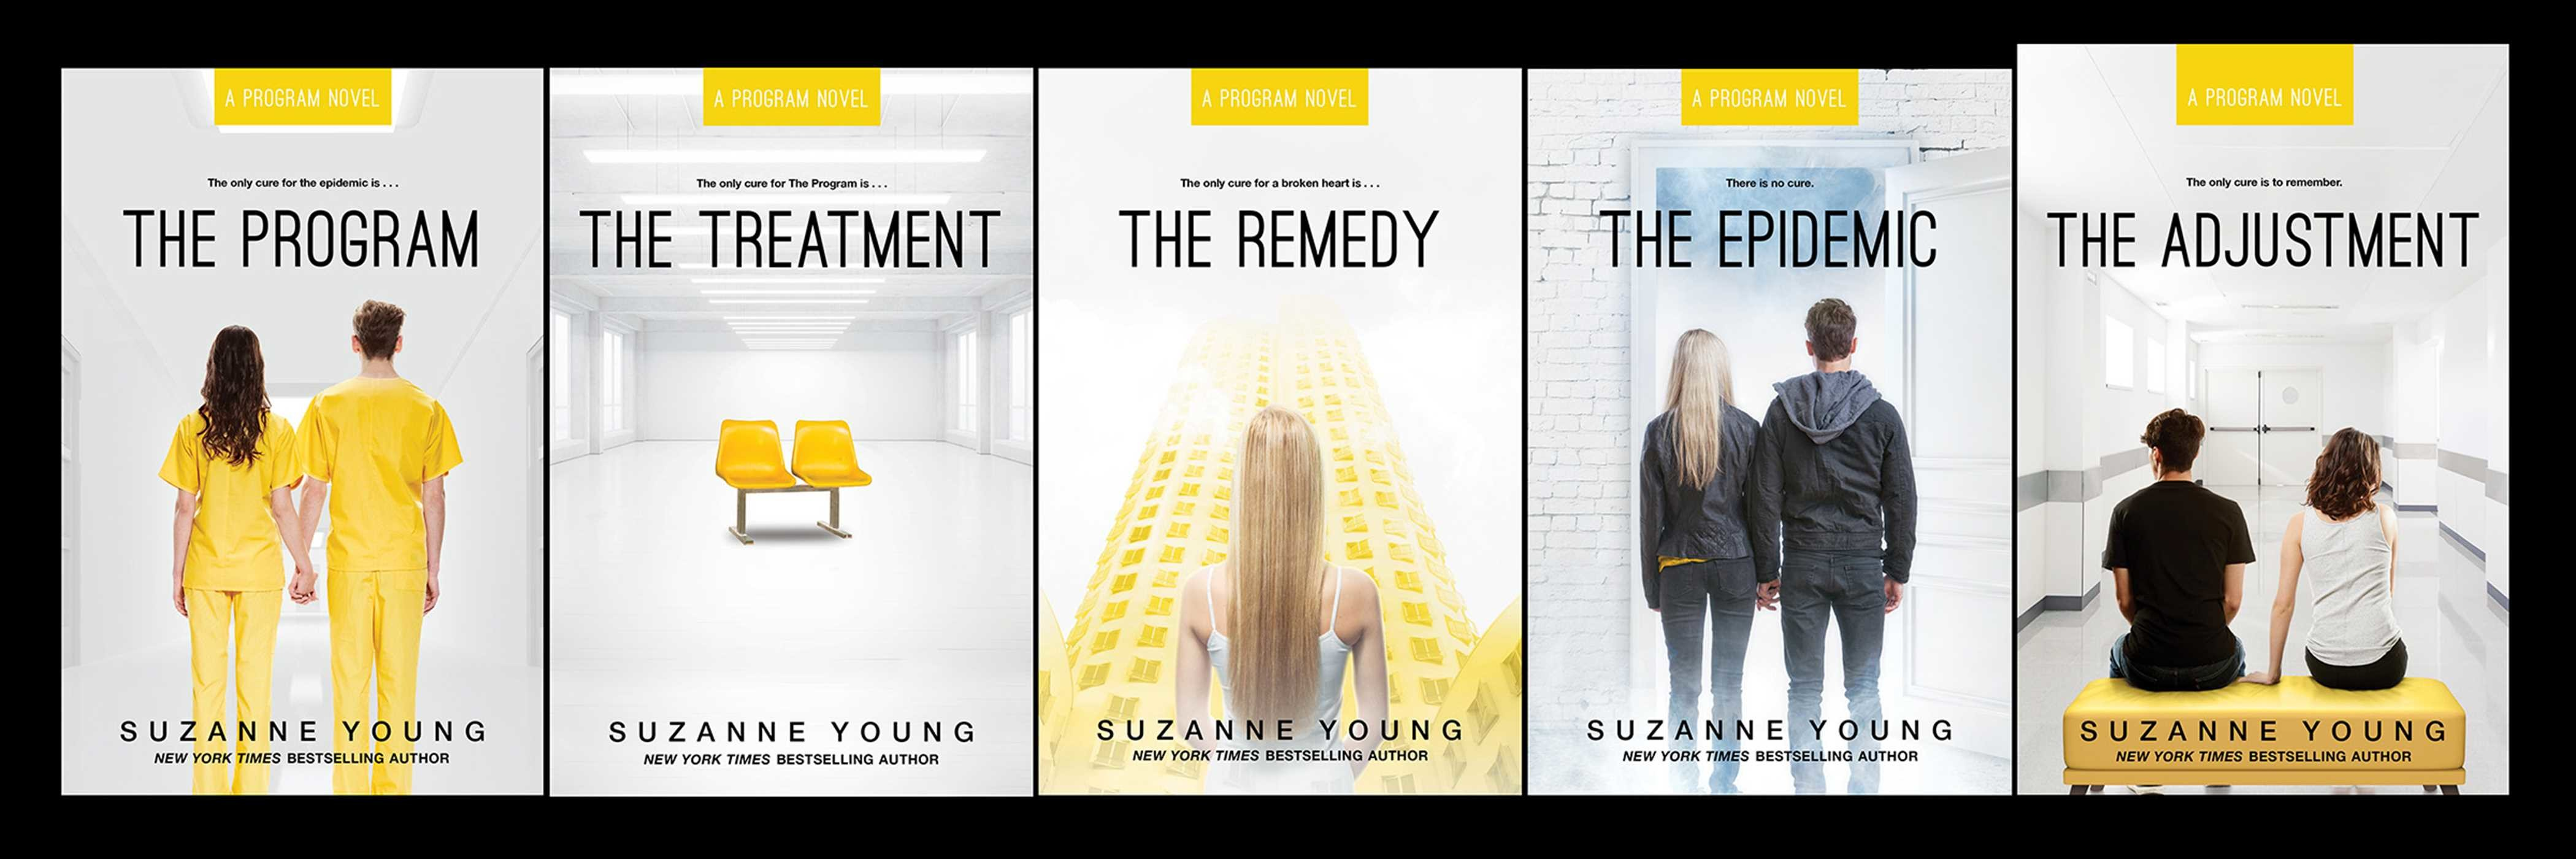 The adjustment 9781481471336.in03